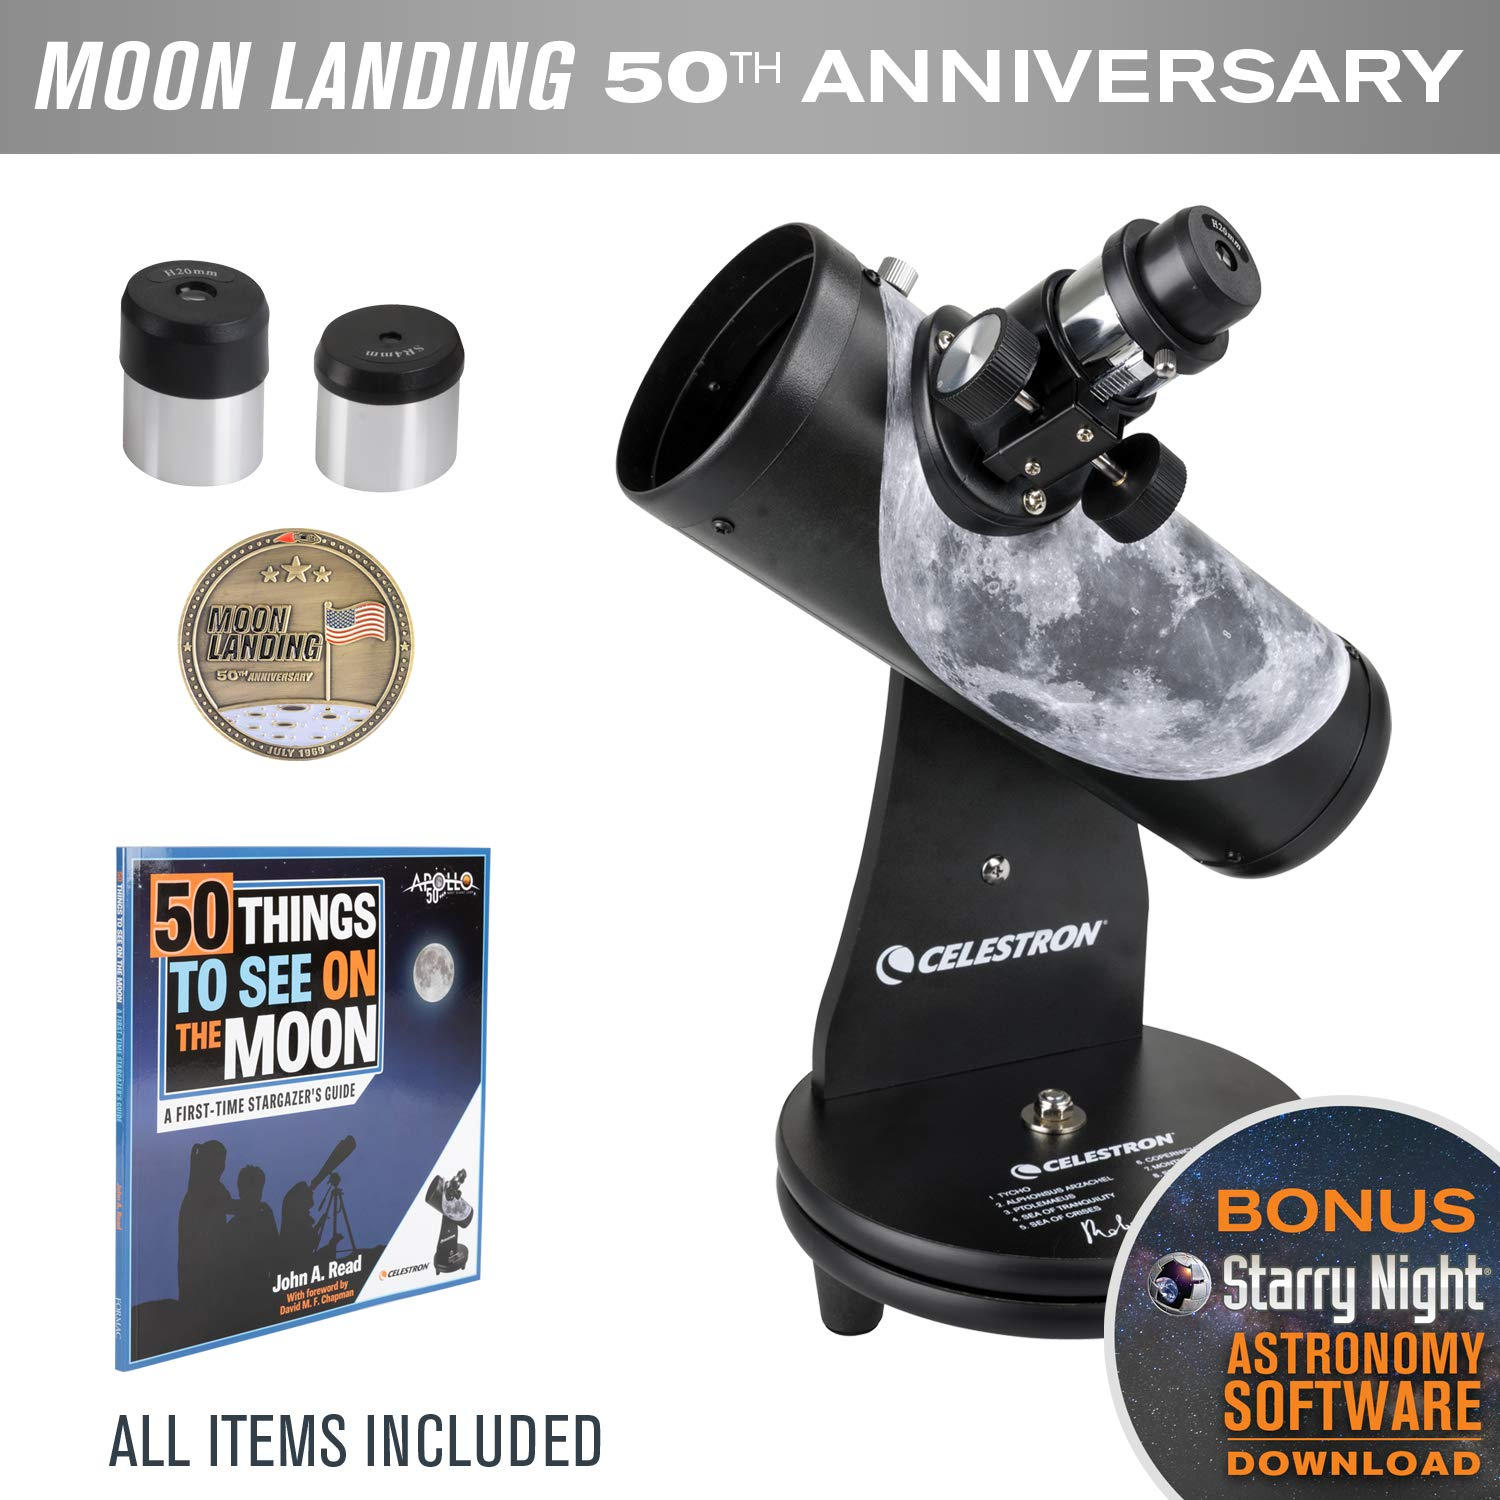 Celestron Firstscope Signature Series R.Reeves Limited Edition Apollo 11 50Th Anniversary Bundle by Celestron